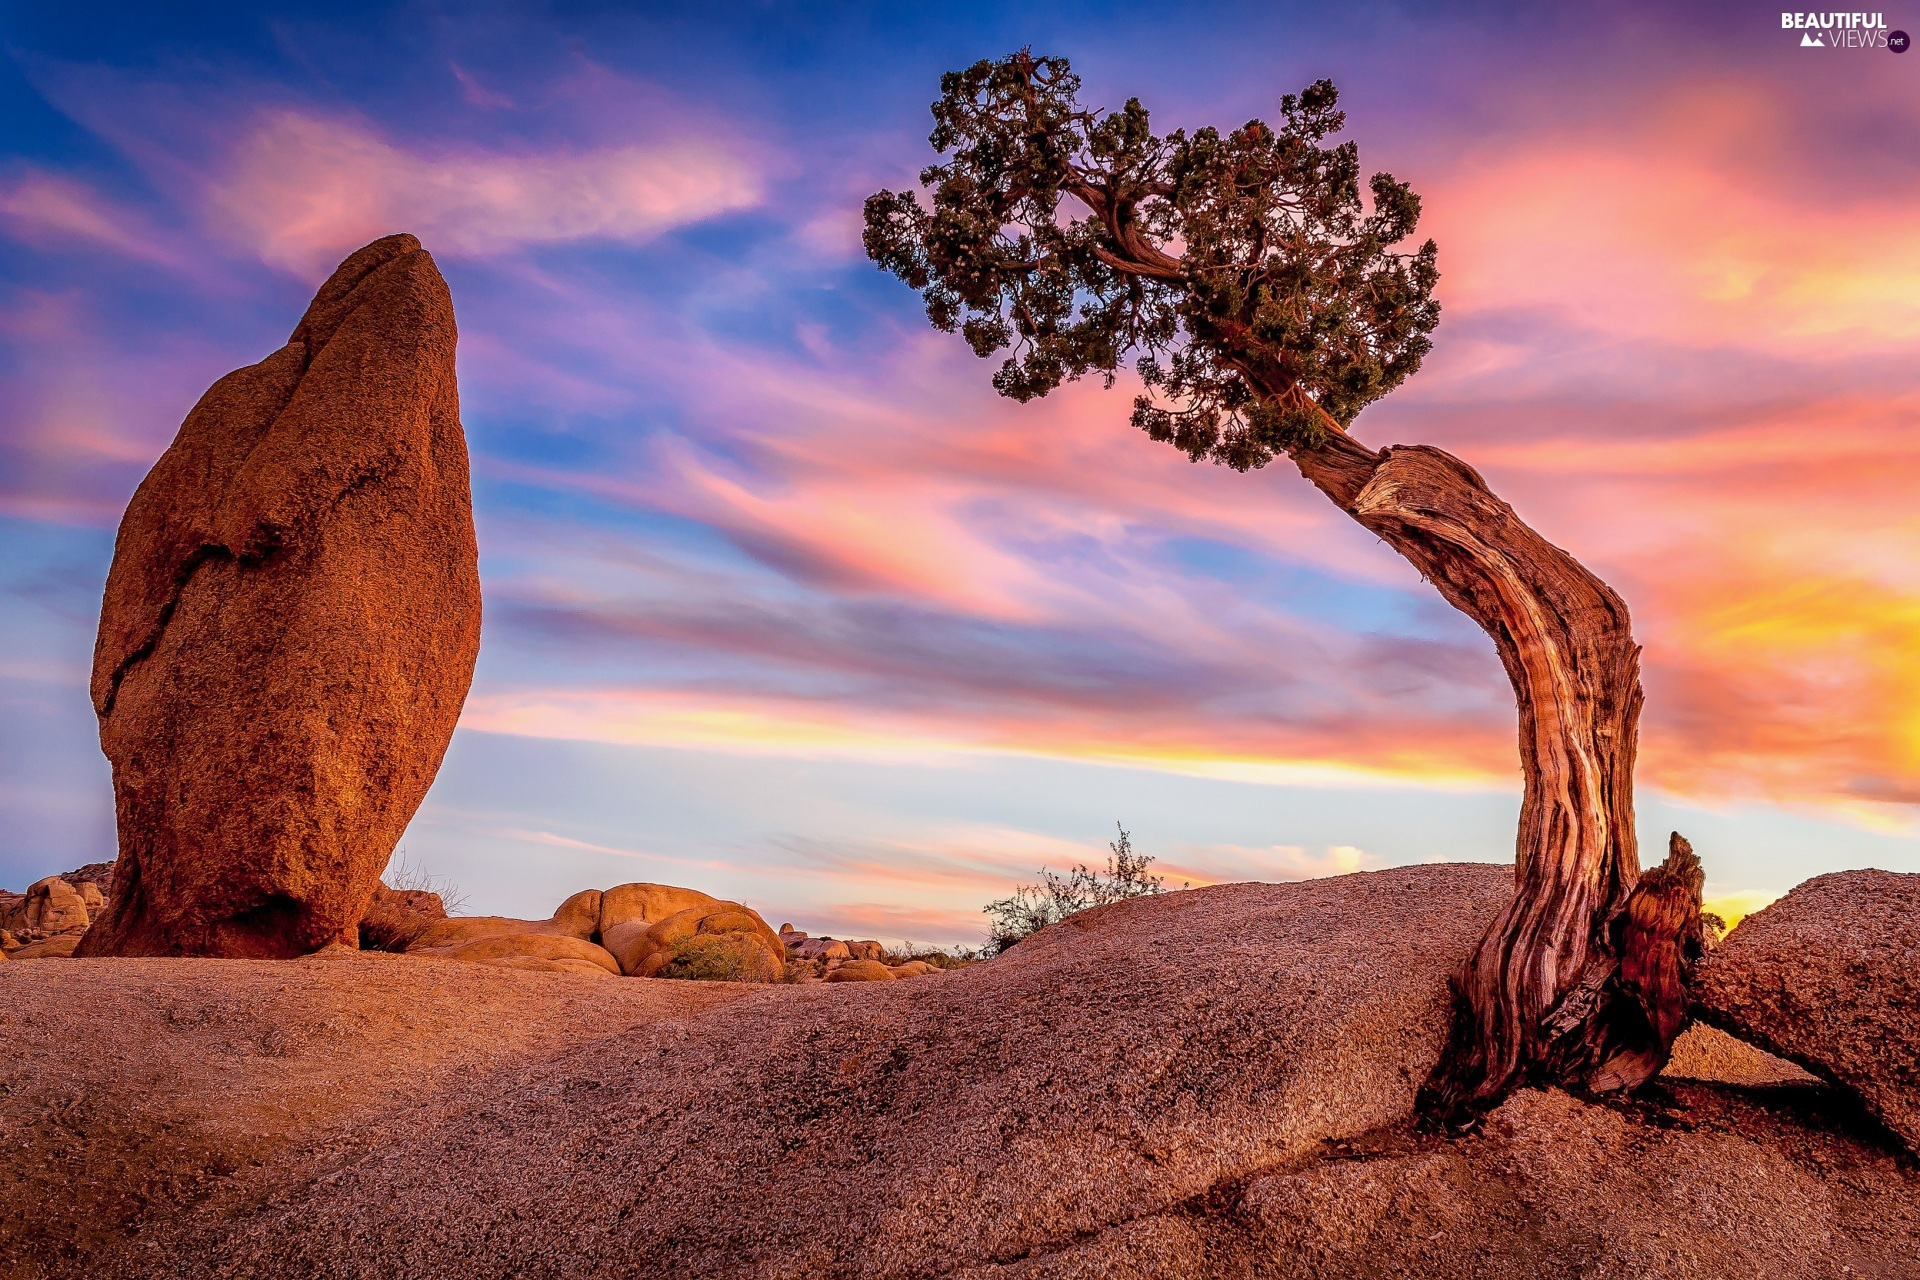 Joshua Tree National Park, The United States, trees, Great Sunsets, rocks, California